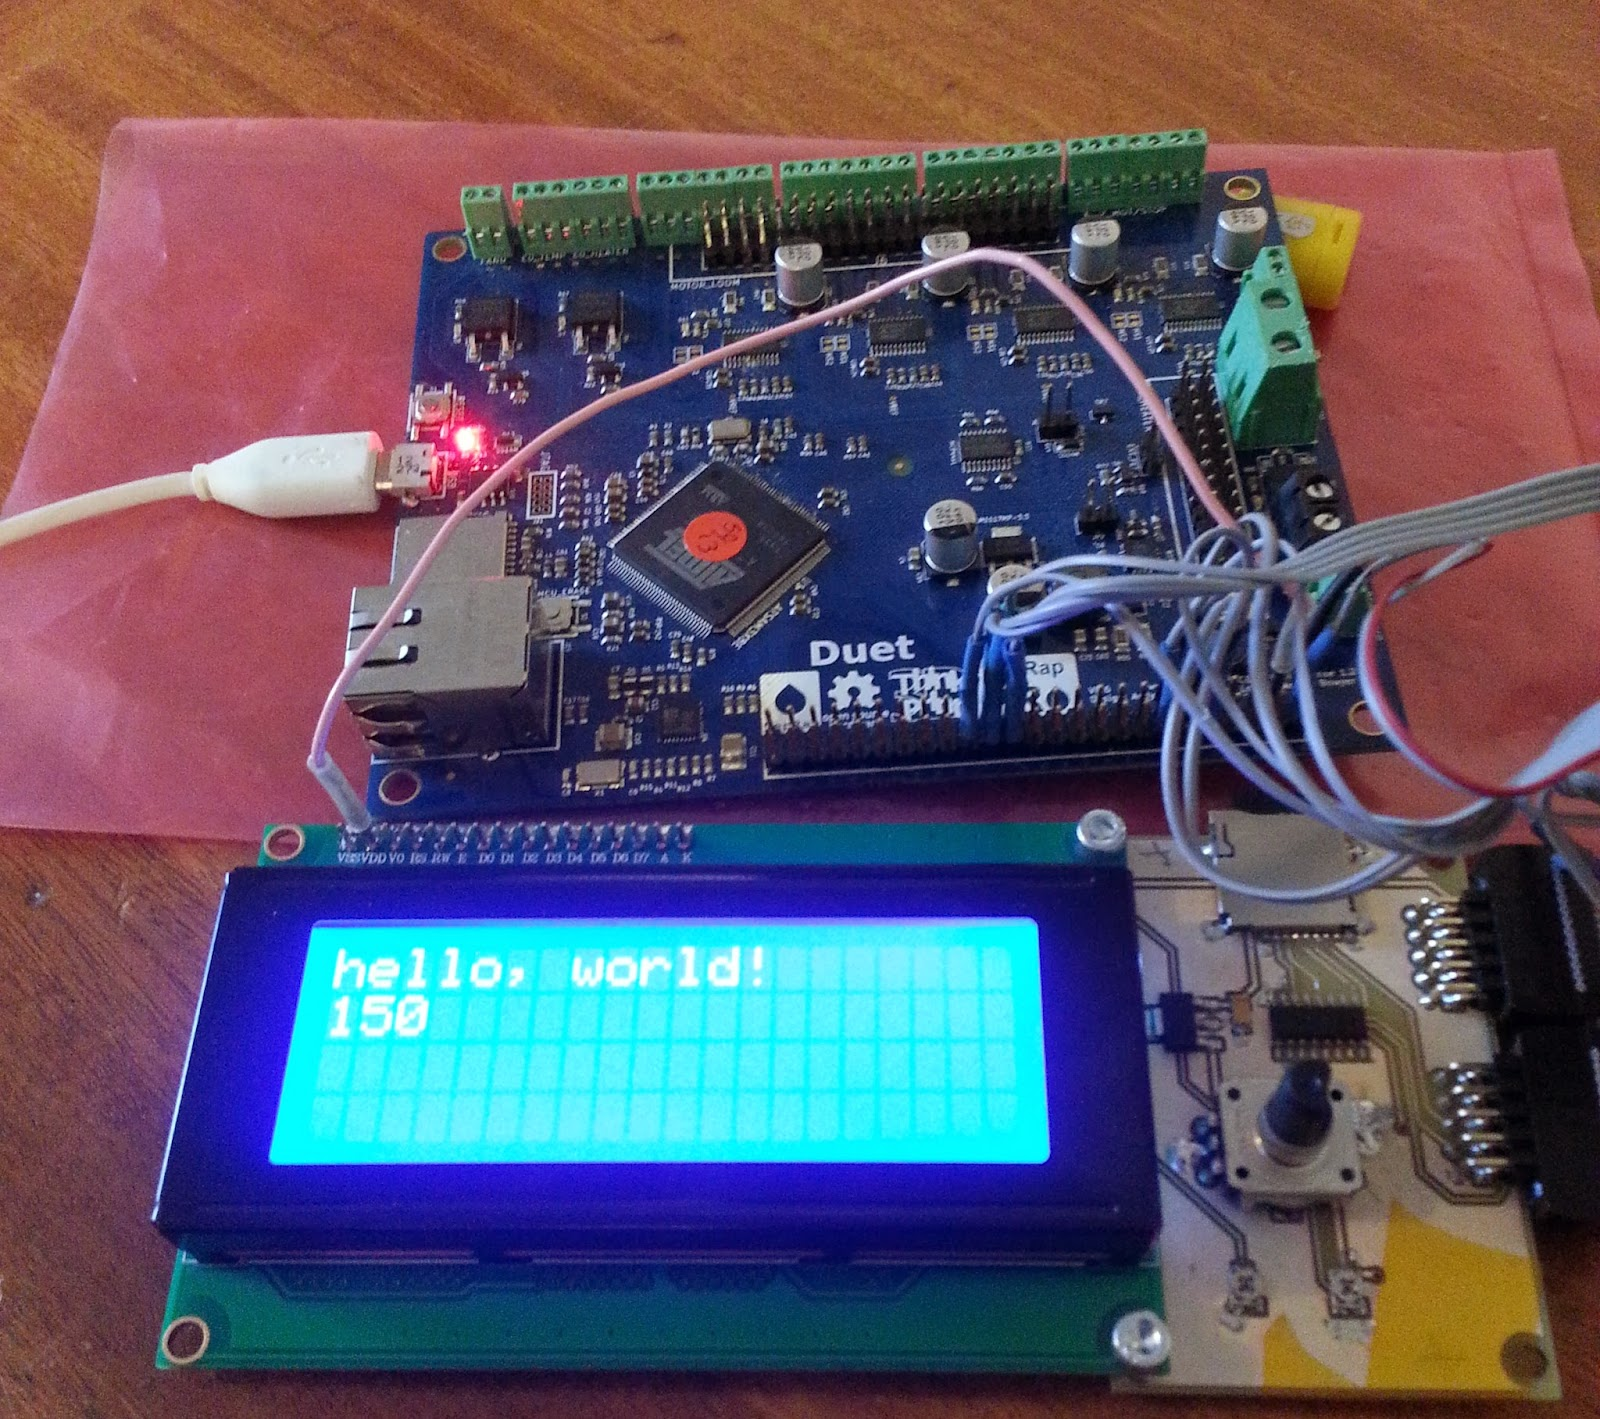 Think3dPrint3d: Duet, 20x4 LCD screen and SD card